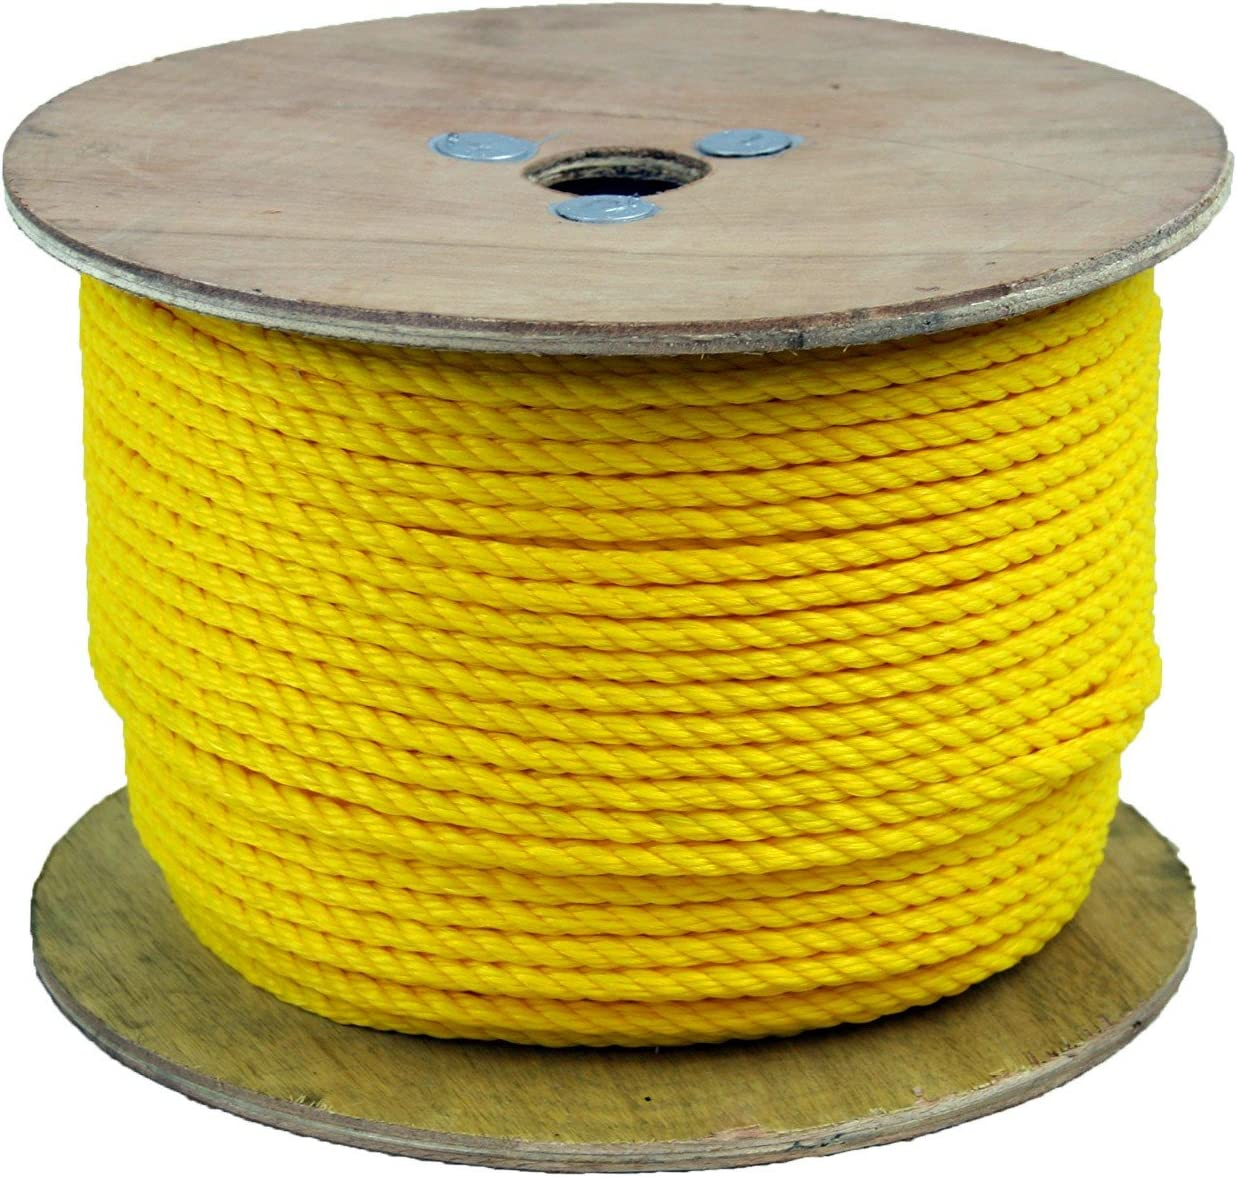 300075 38 Inch Poly Pro Yellow Rope 600 Feet Long